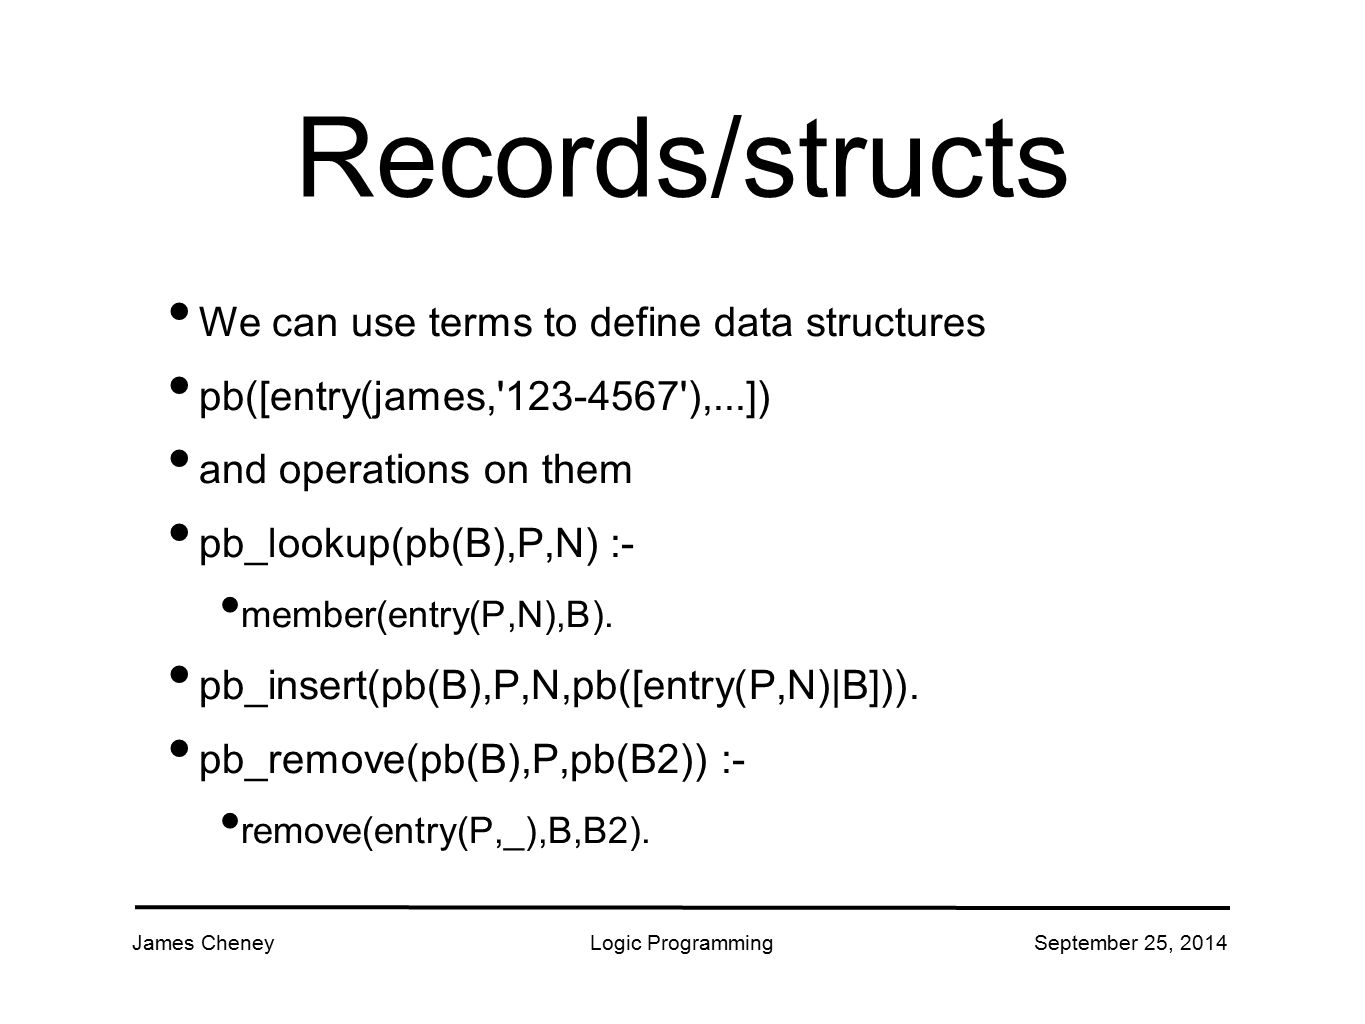 James CheneyLogic ProgrammingSeptember 25, 2014 Records/structs We can use terms to define data structures pb([entry(james,'123-4567'),...]) and opera